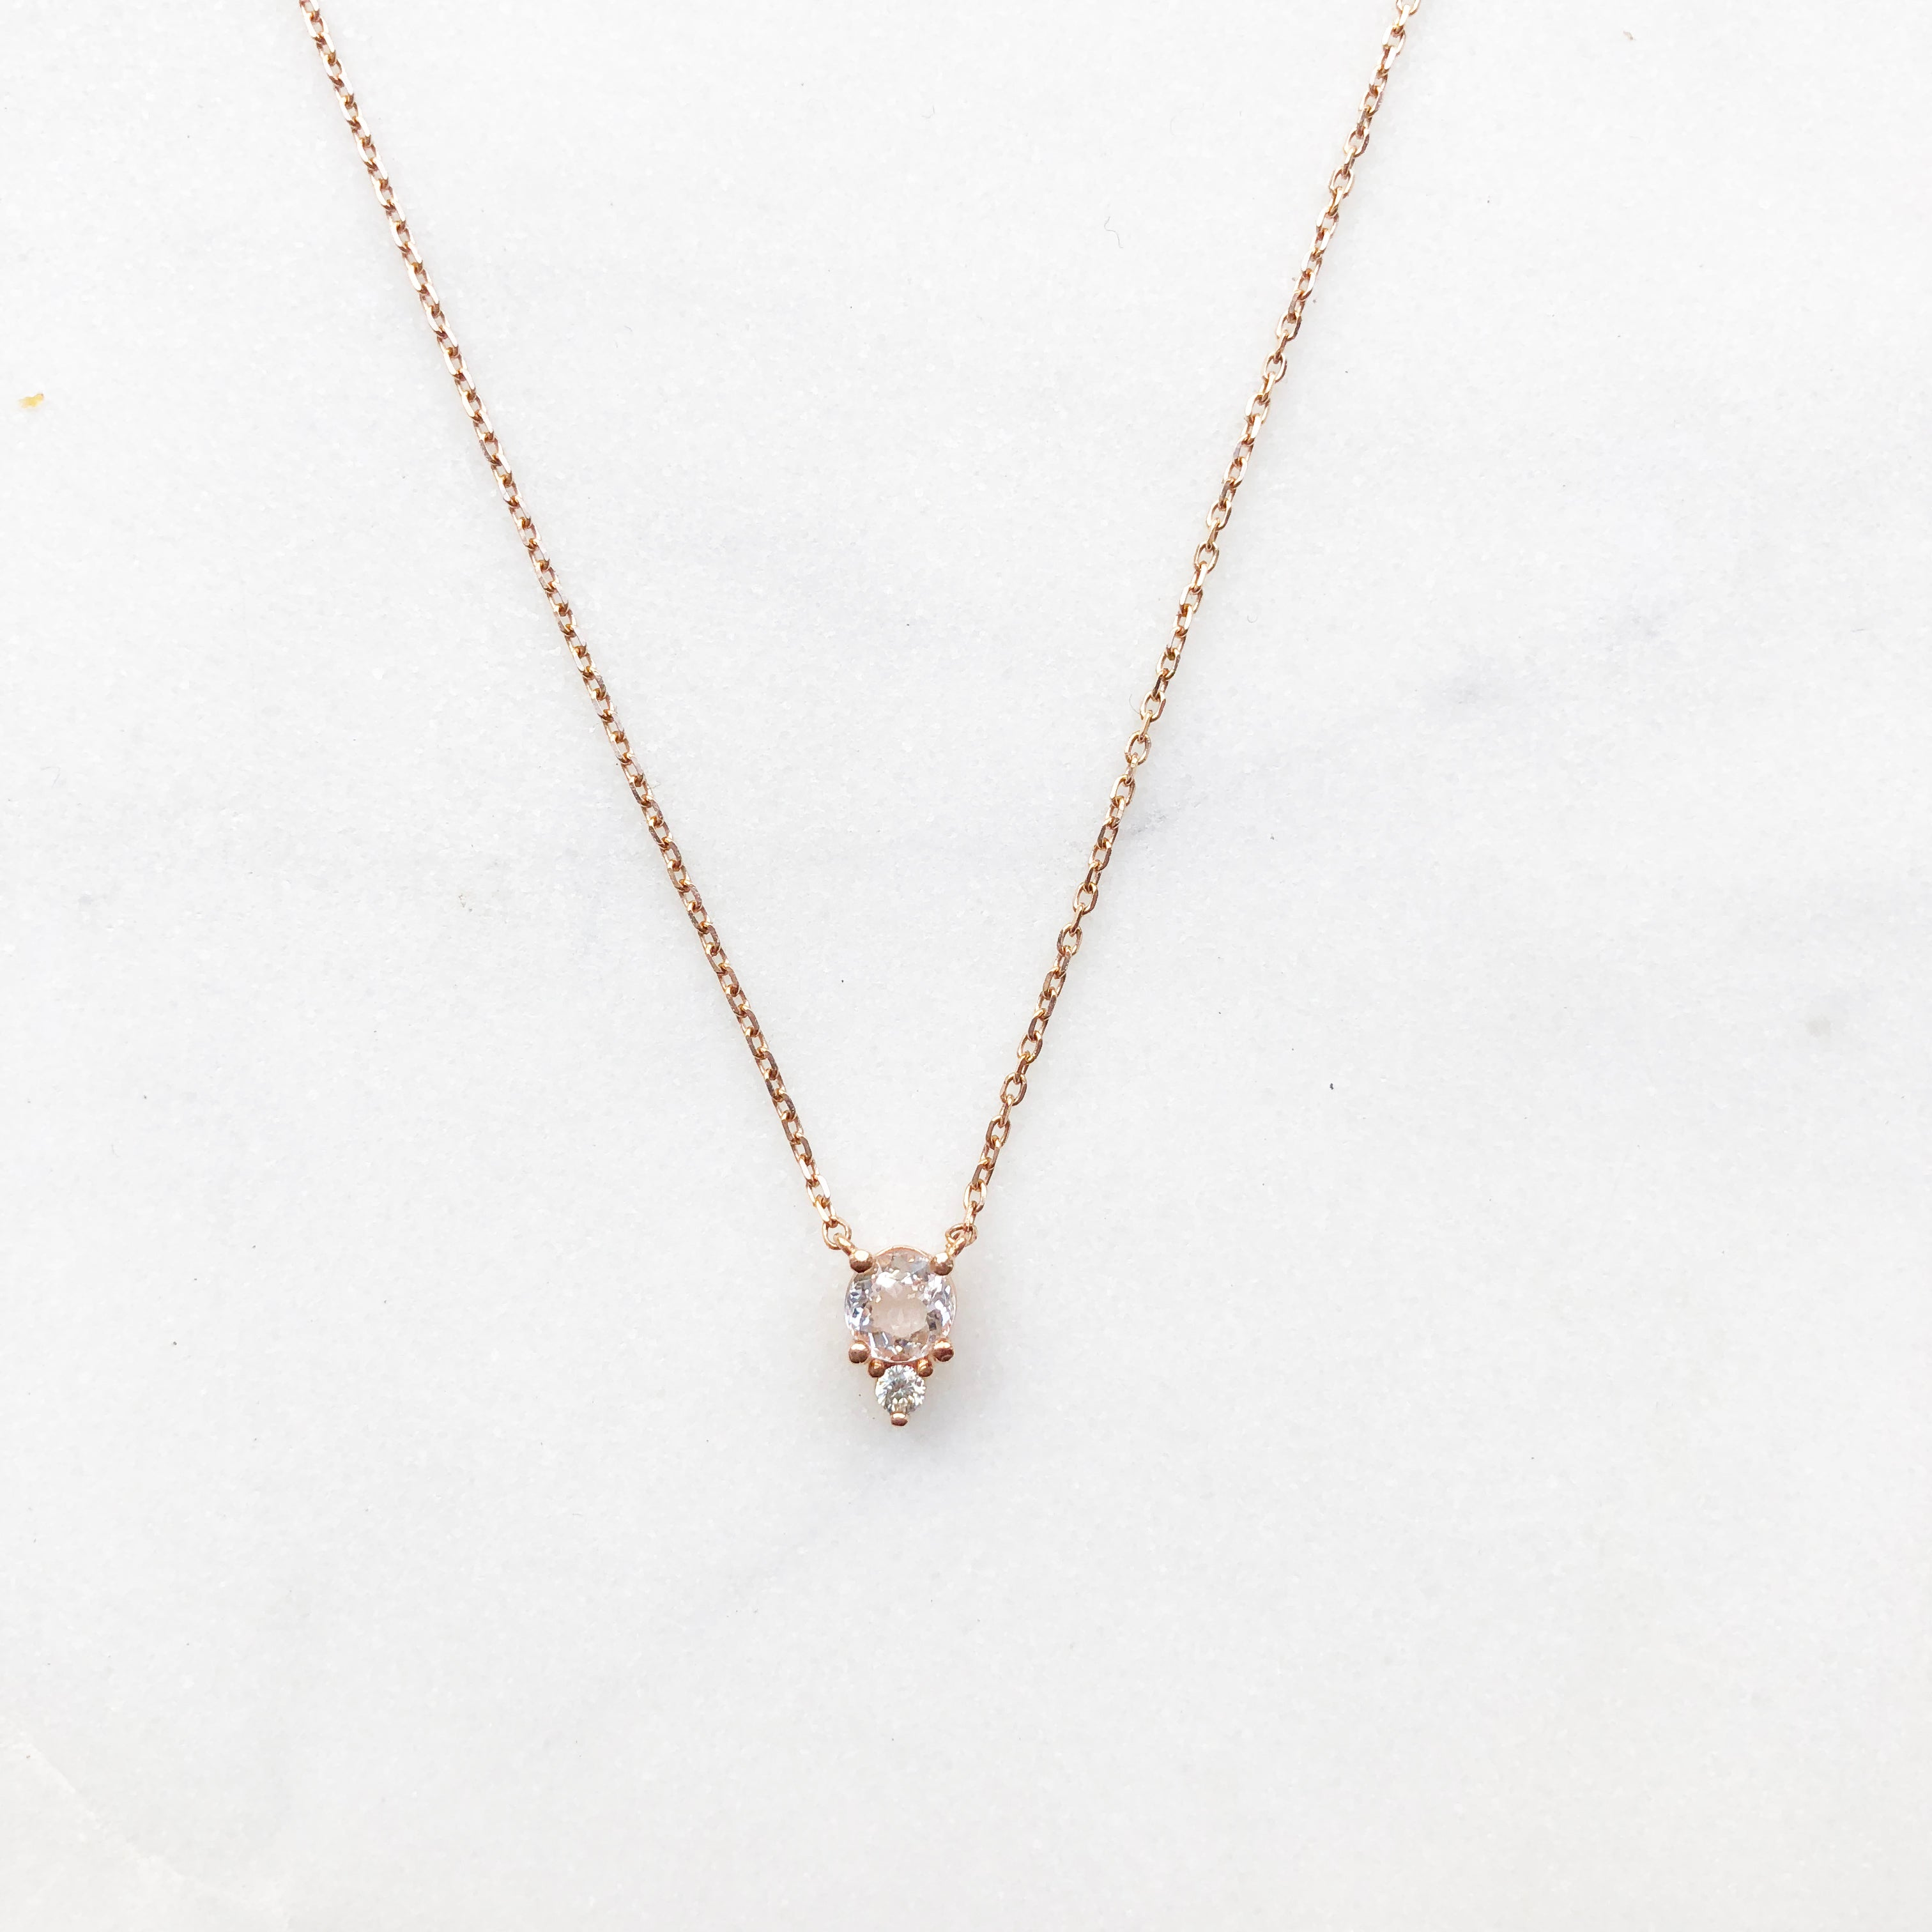 products maile stones pendant handmade morganite